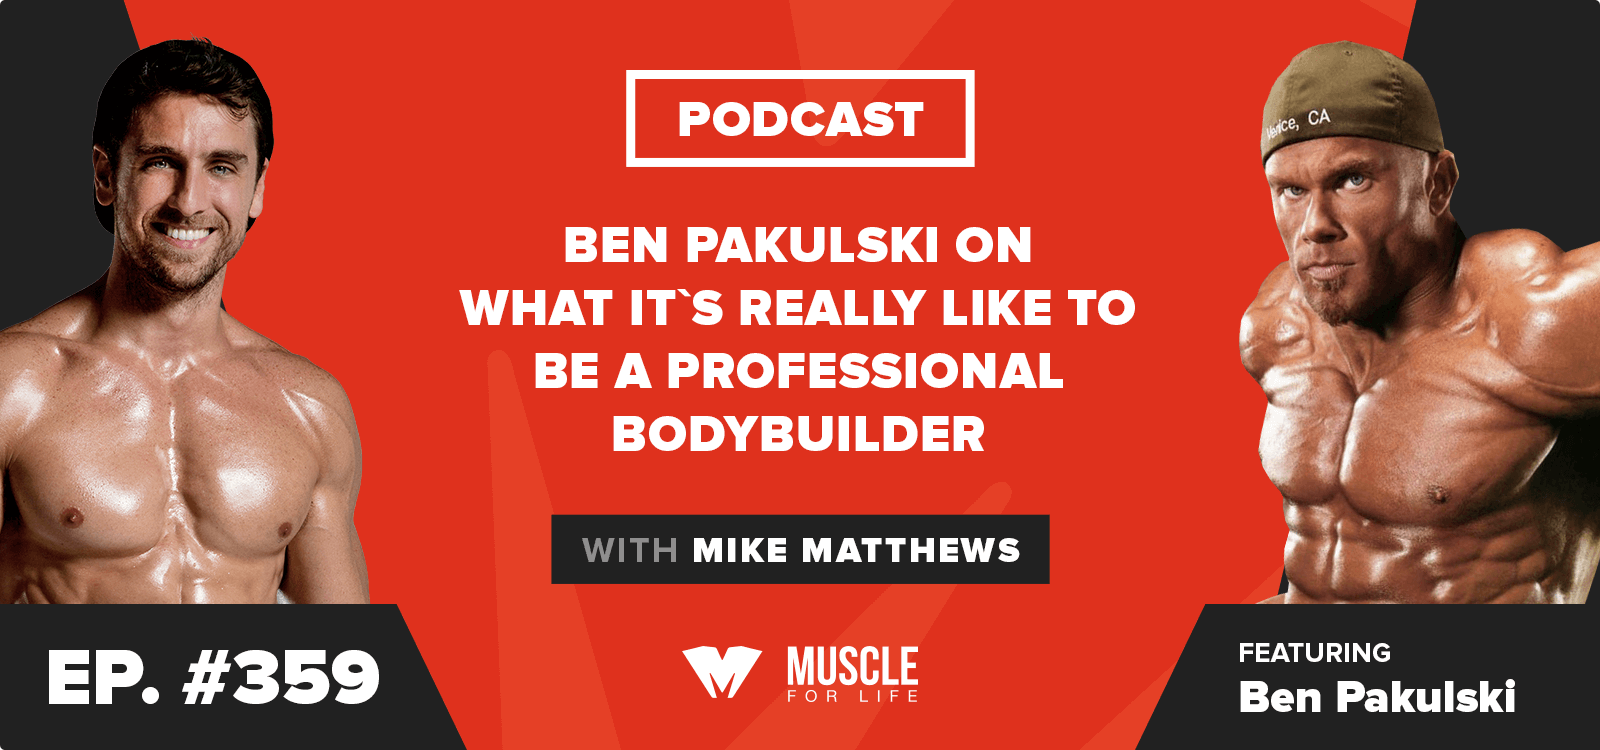 Ben Pakulski on What It's Really Like to Be a Professional Bodybuilder